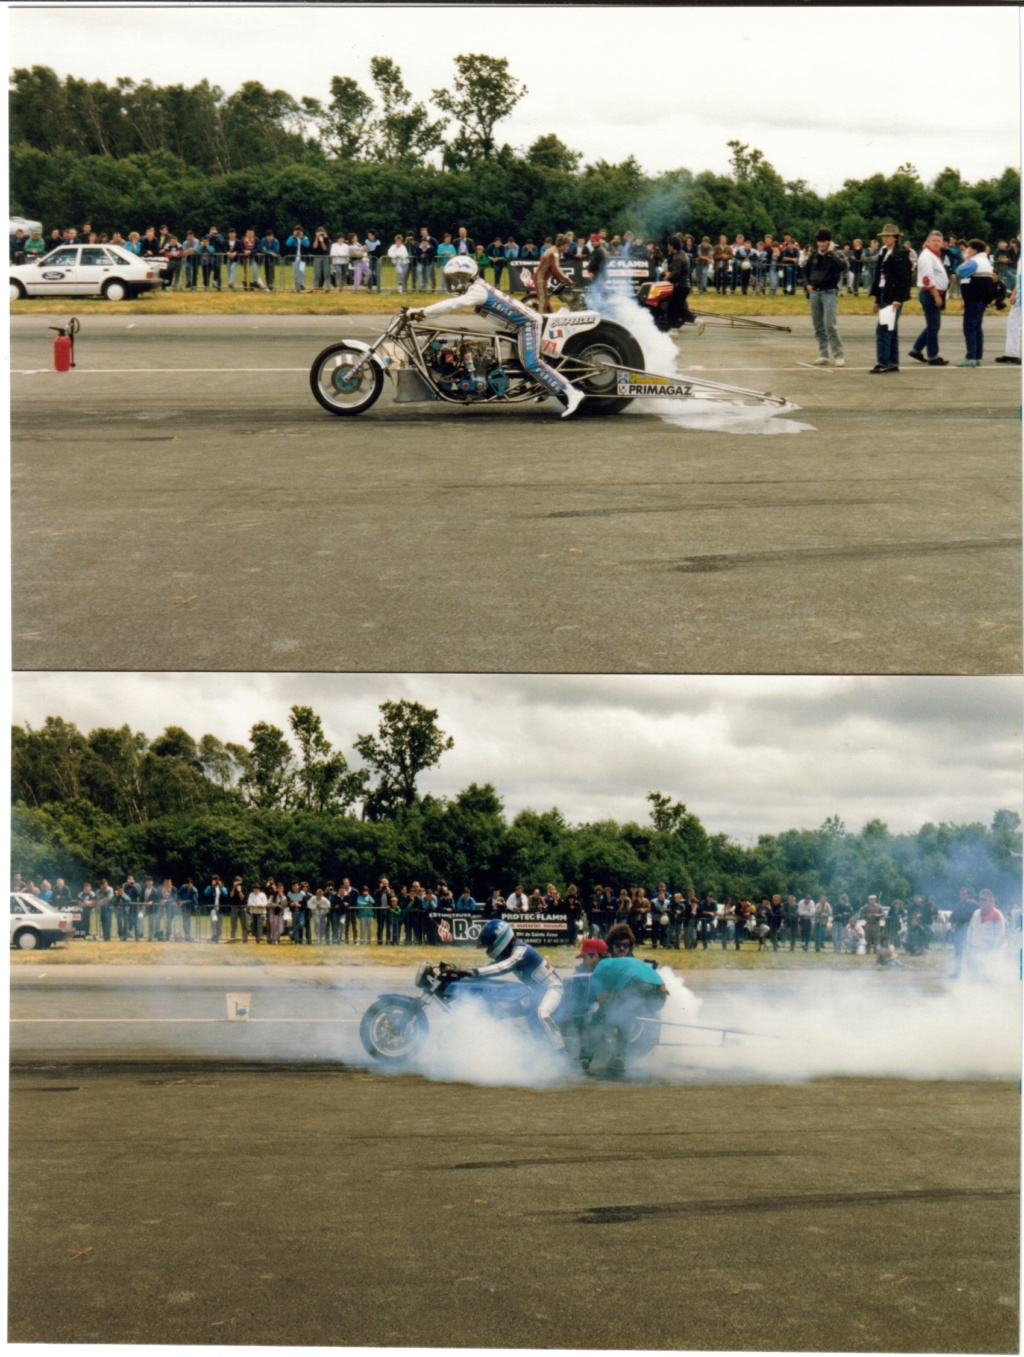 dragster guiscriff 1989 Dragst11